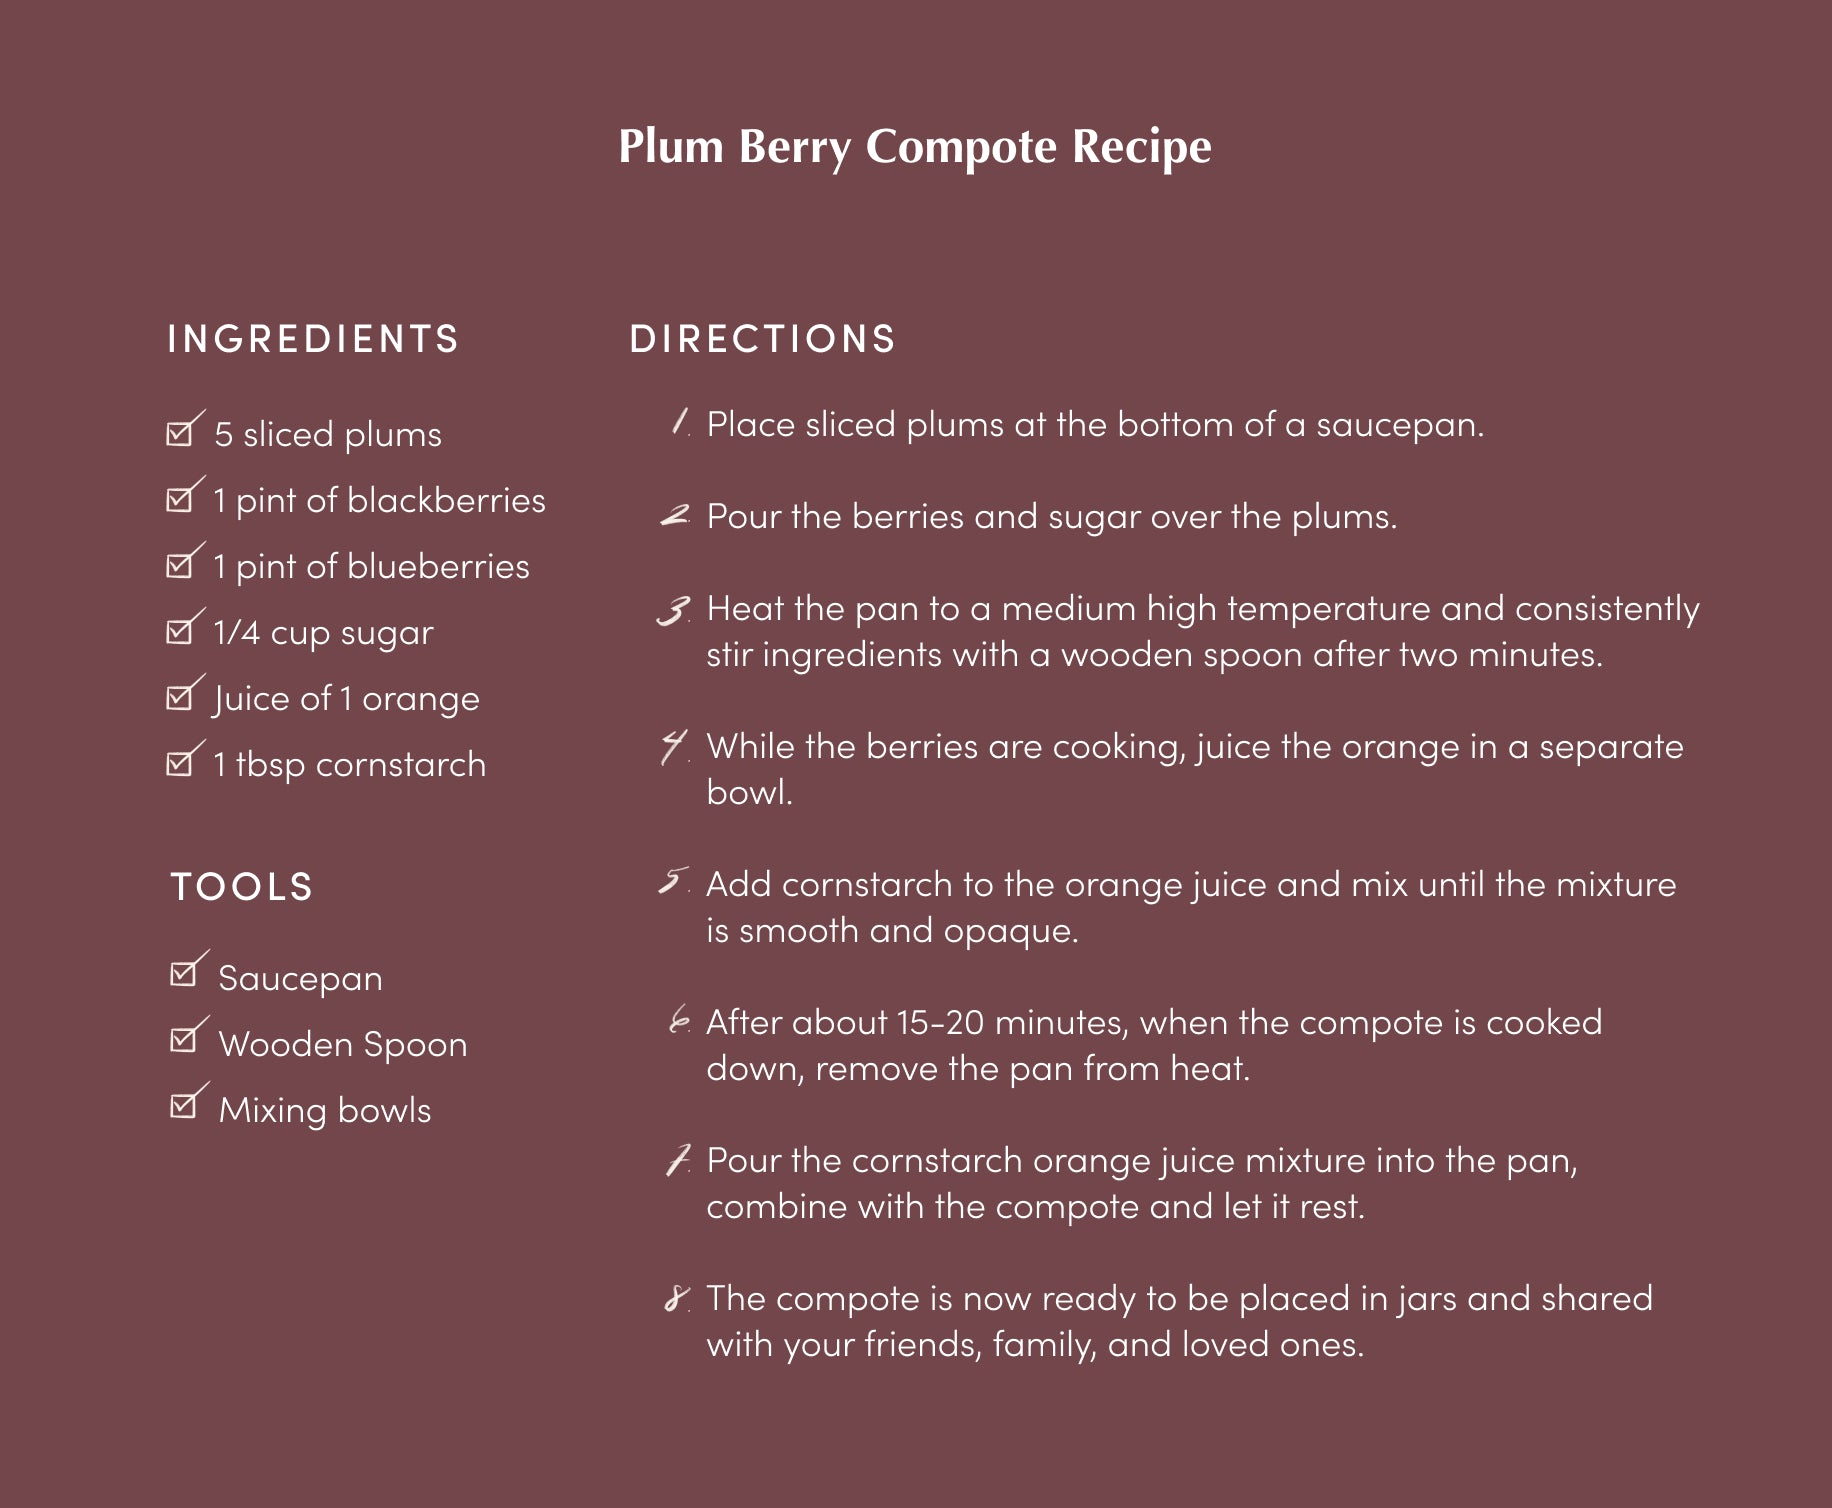 Plum berry compote step-by-step recipe.